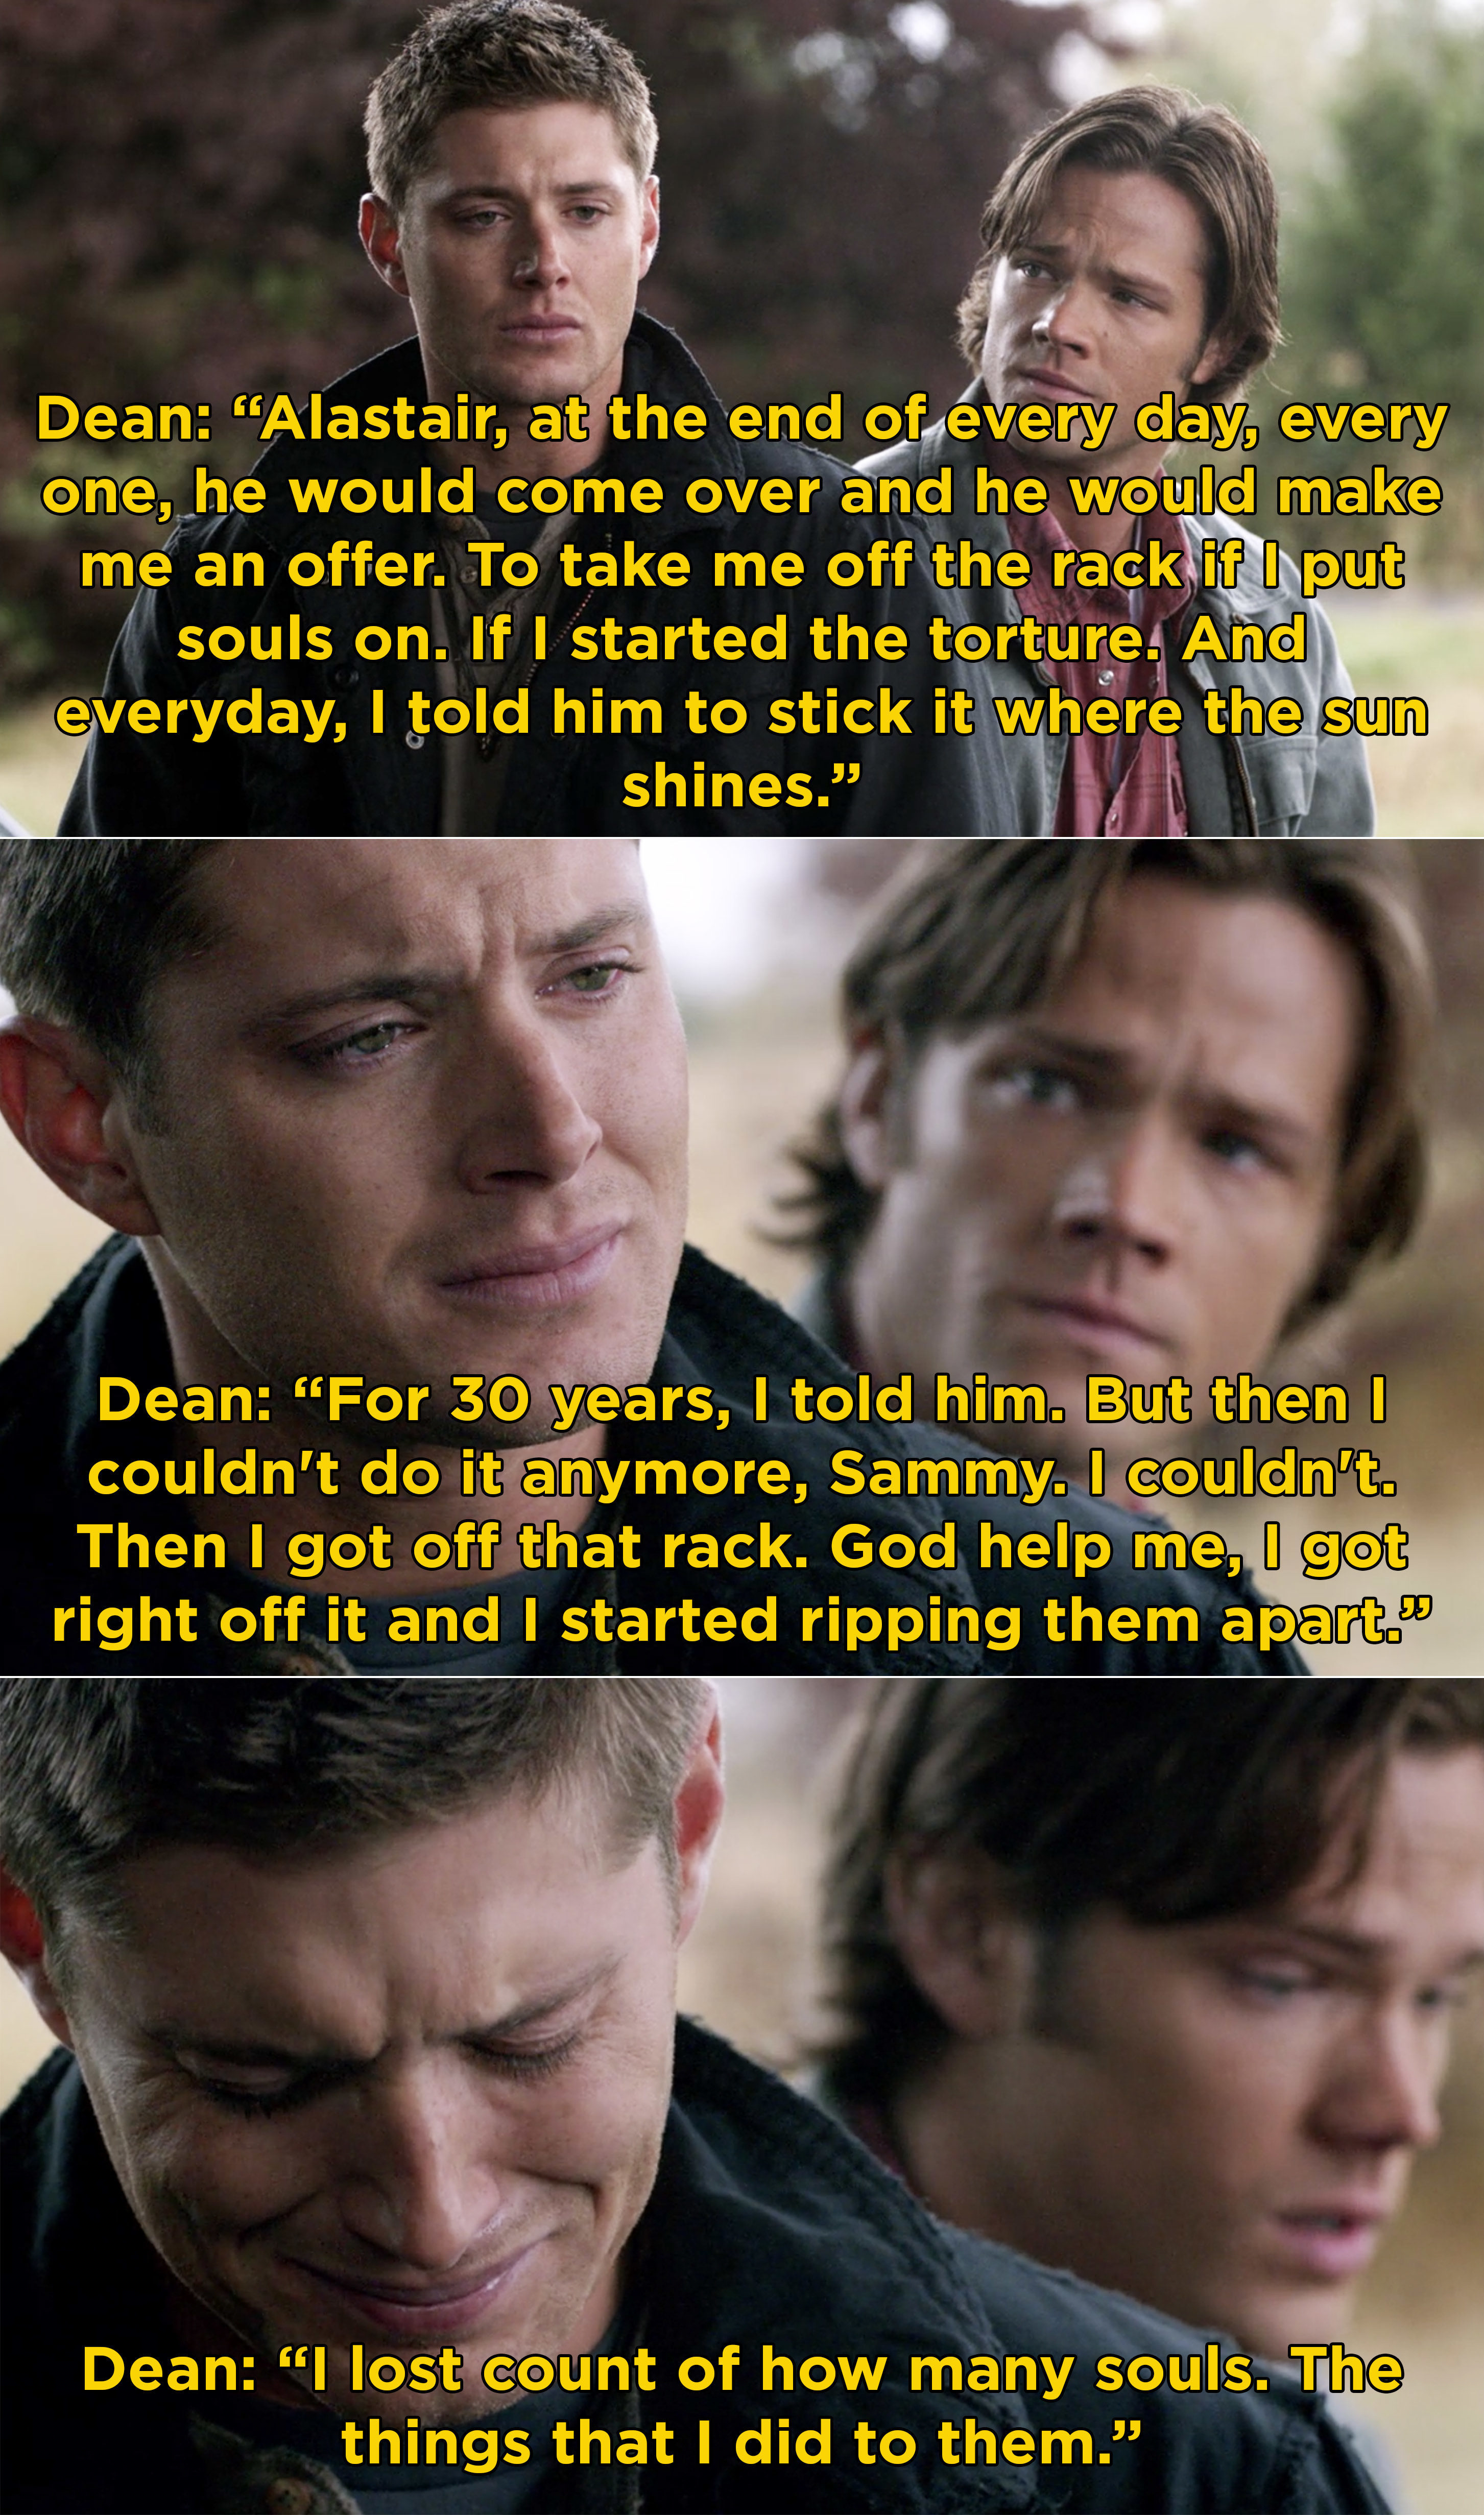 Dean telling Sam how he helped torture souls while in hell